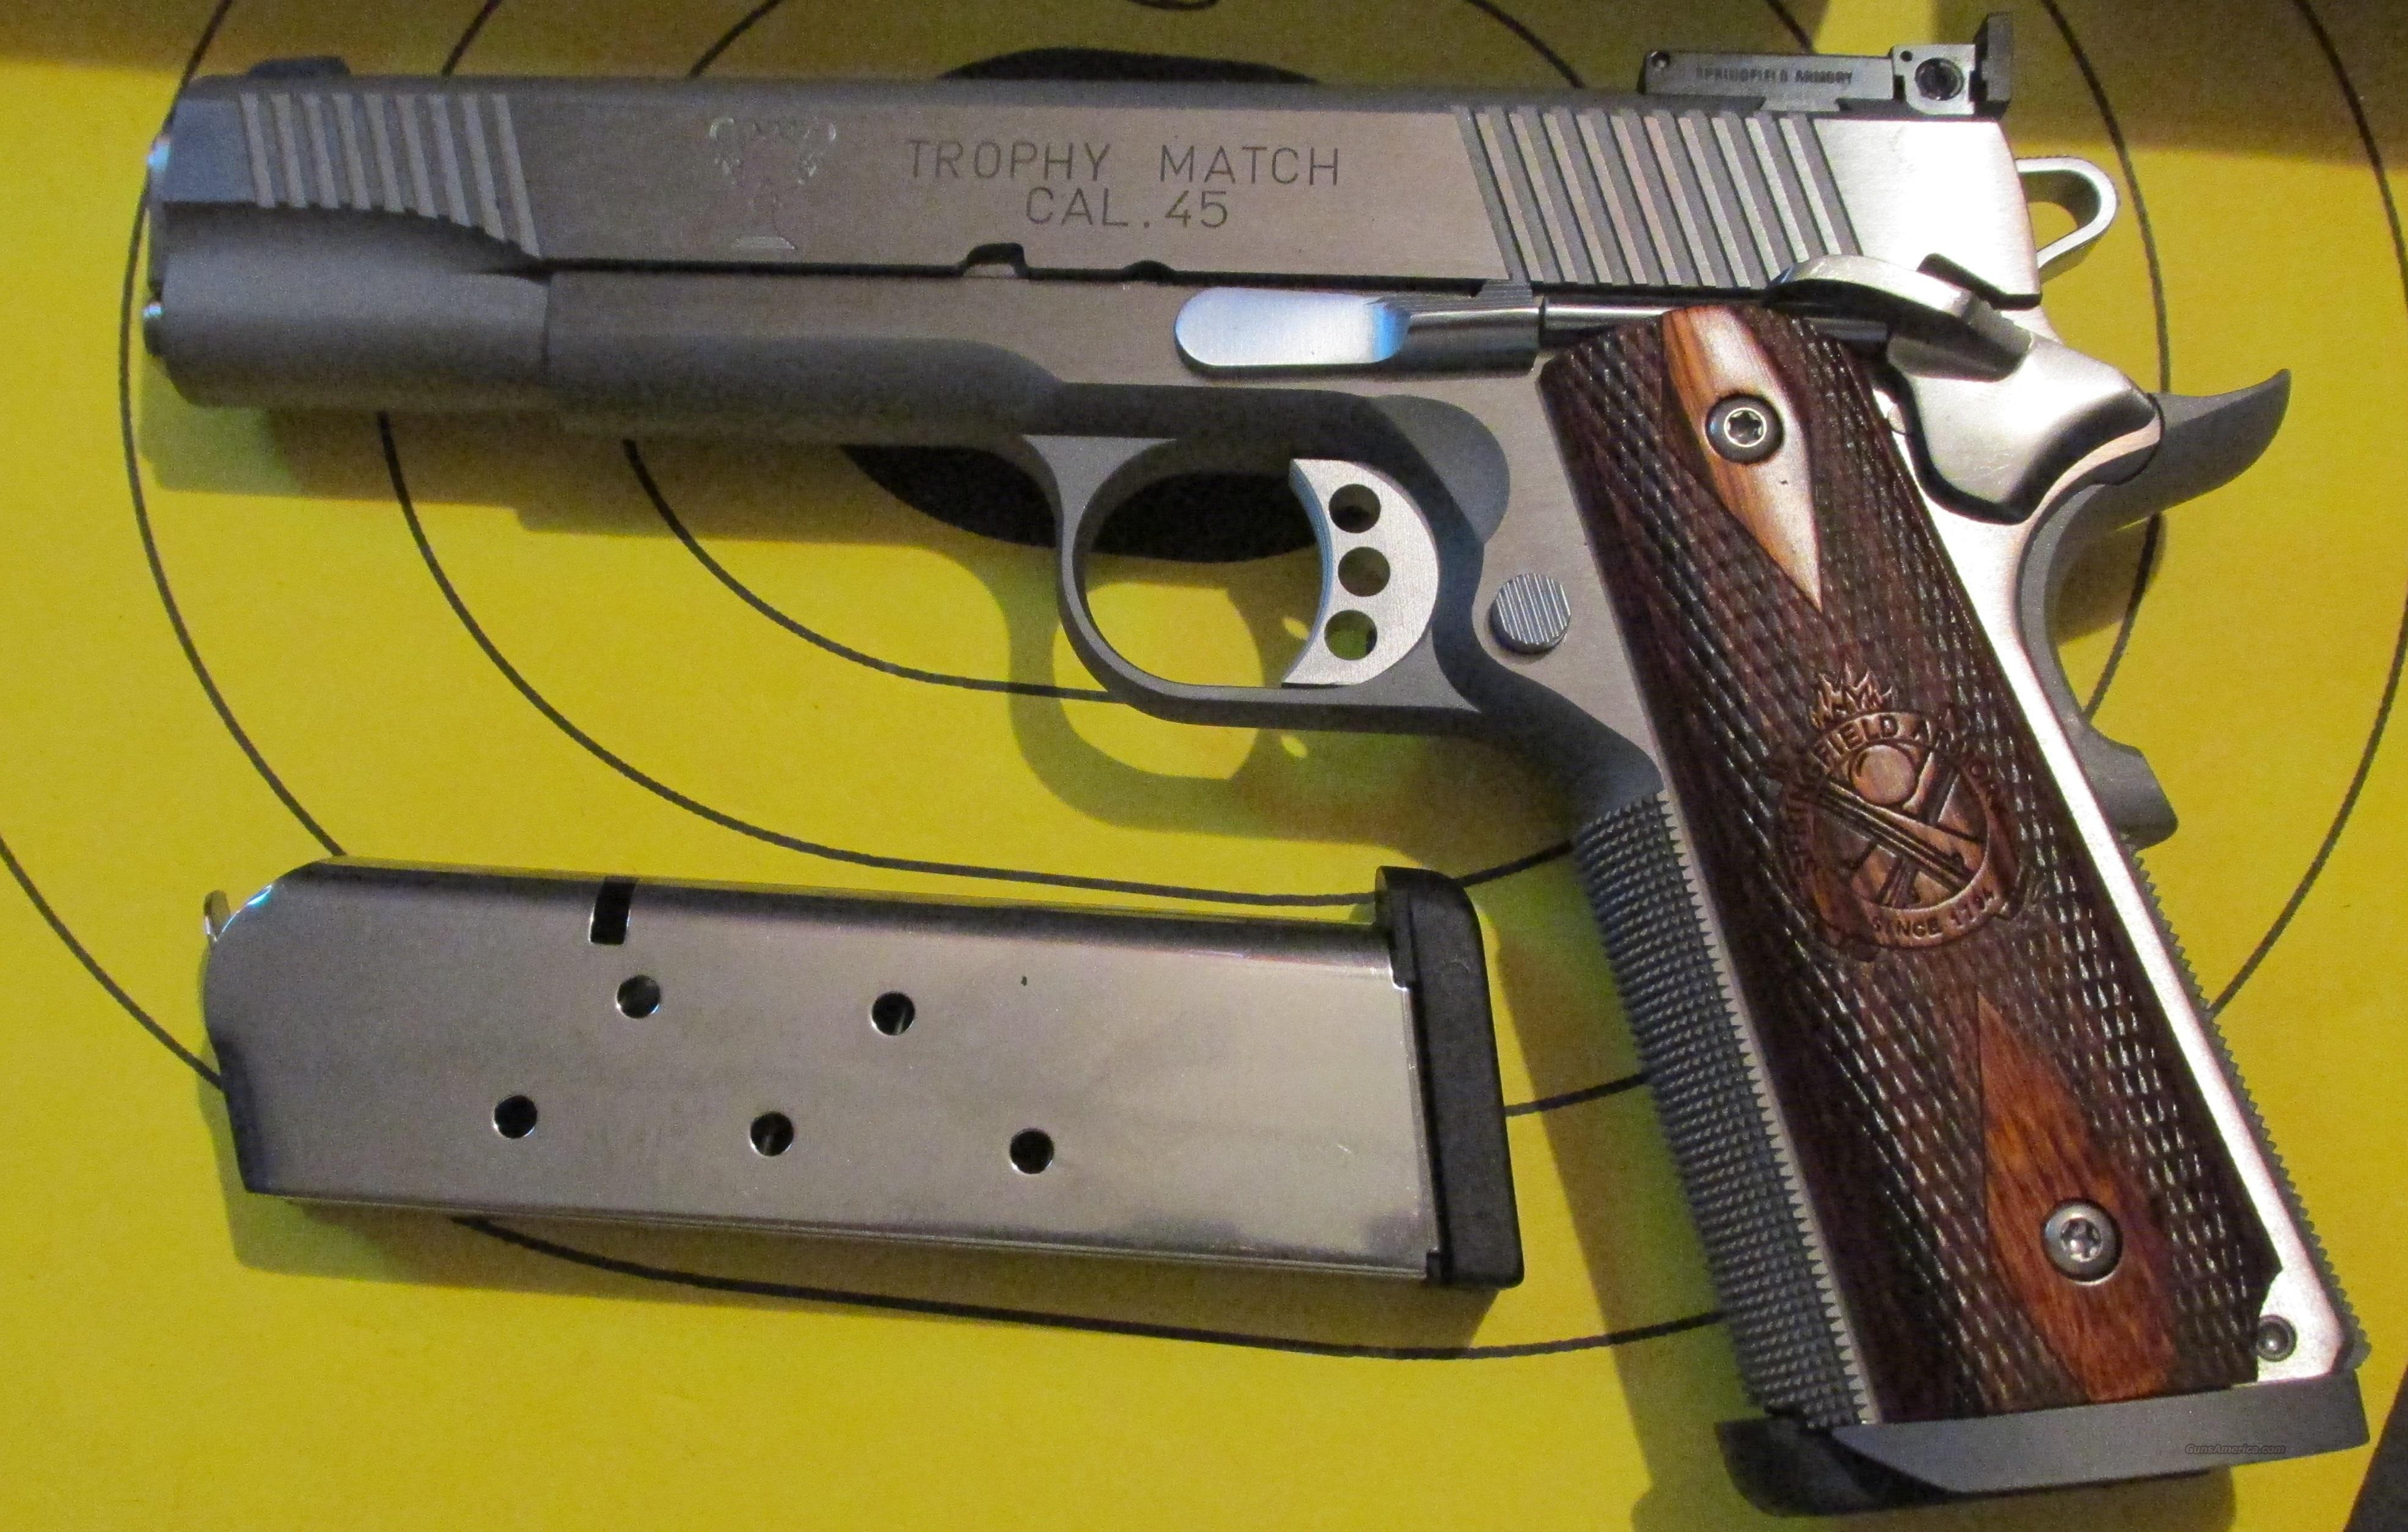 SPRINGFIELD ARMORY TROPHY MATCH 1911 STYLE 45ACP PISTOL (PI9140LP)  Guns > Pistols > Springfield Armory Pistols > 1911 Type